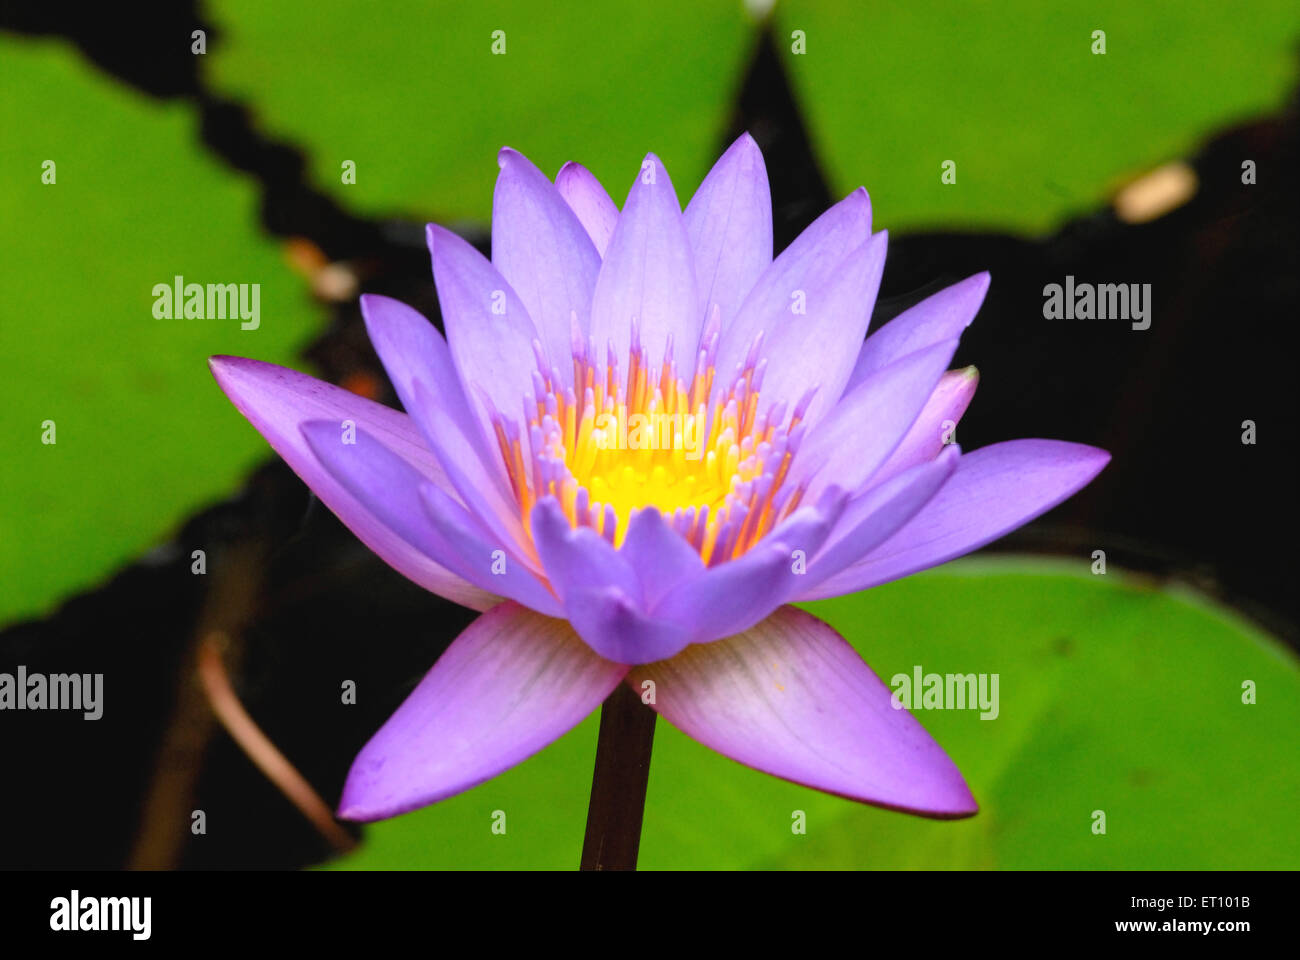 Lotus with yellow pollen nelumbo nucifera water lilly - Stock Image